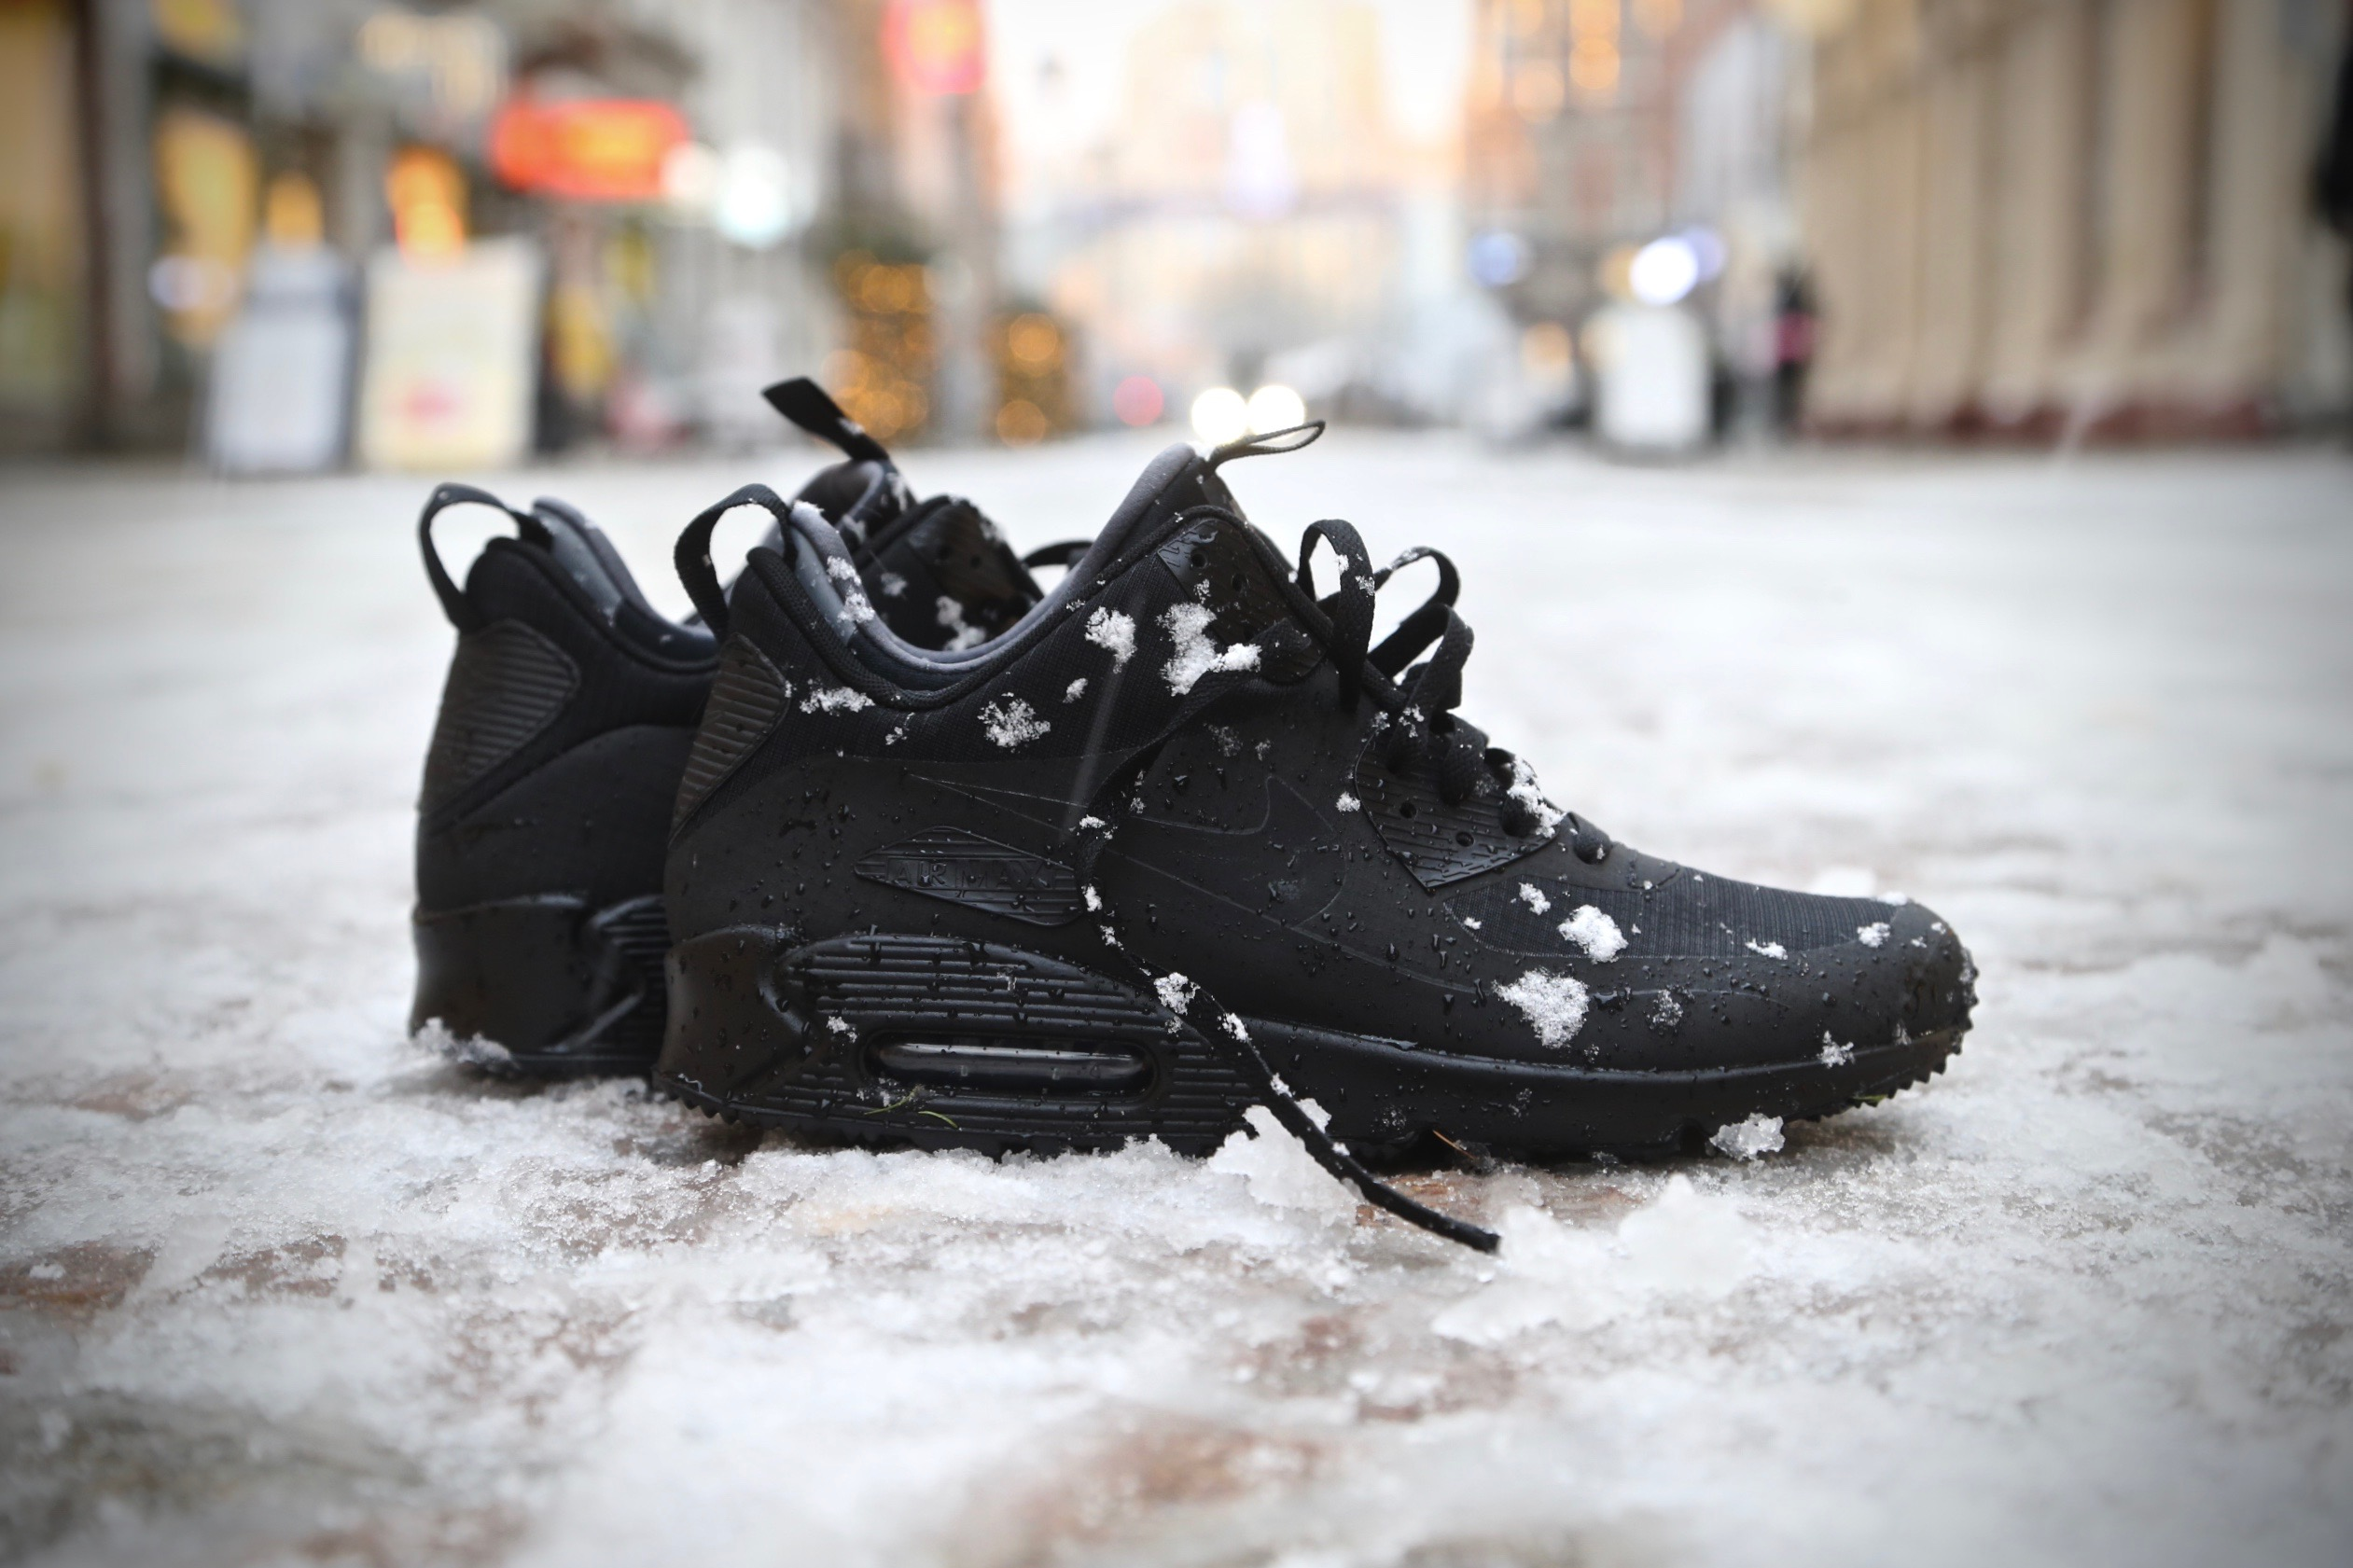 low cost cbf77 f7676 Nike Air Max 90 Mid Winter - Black / Black